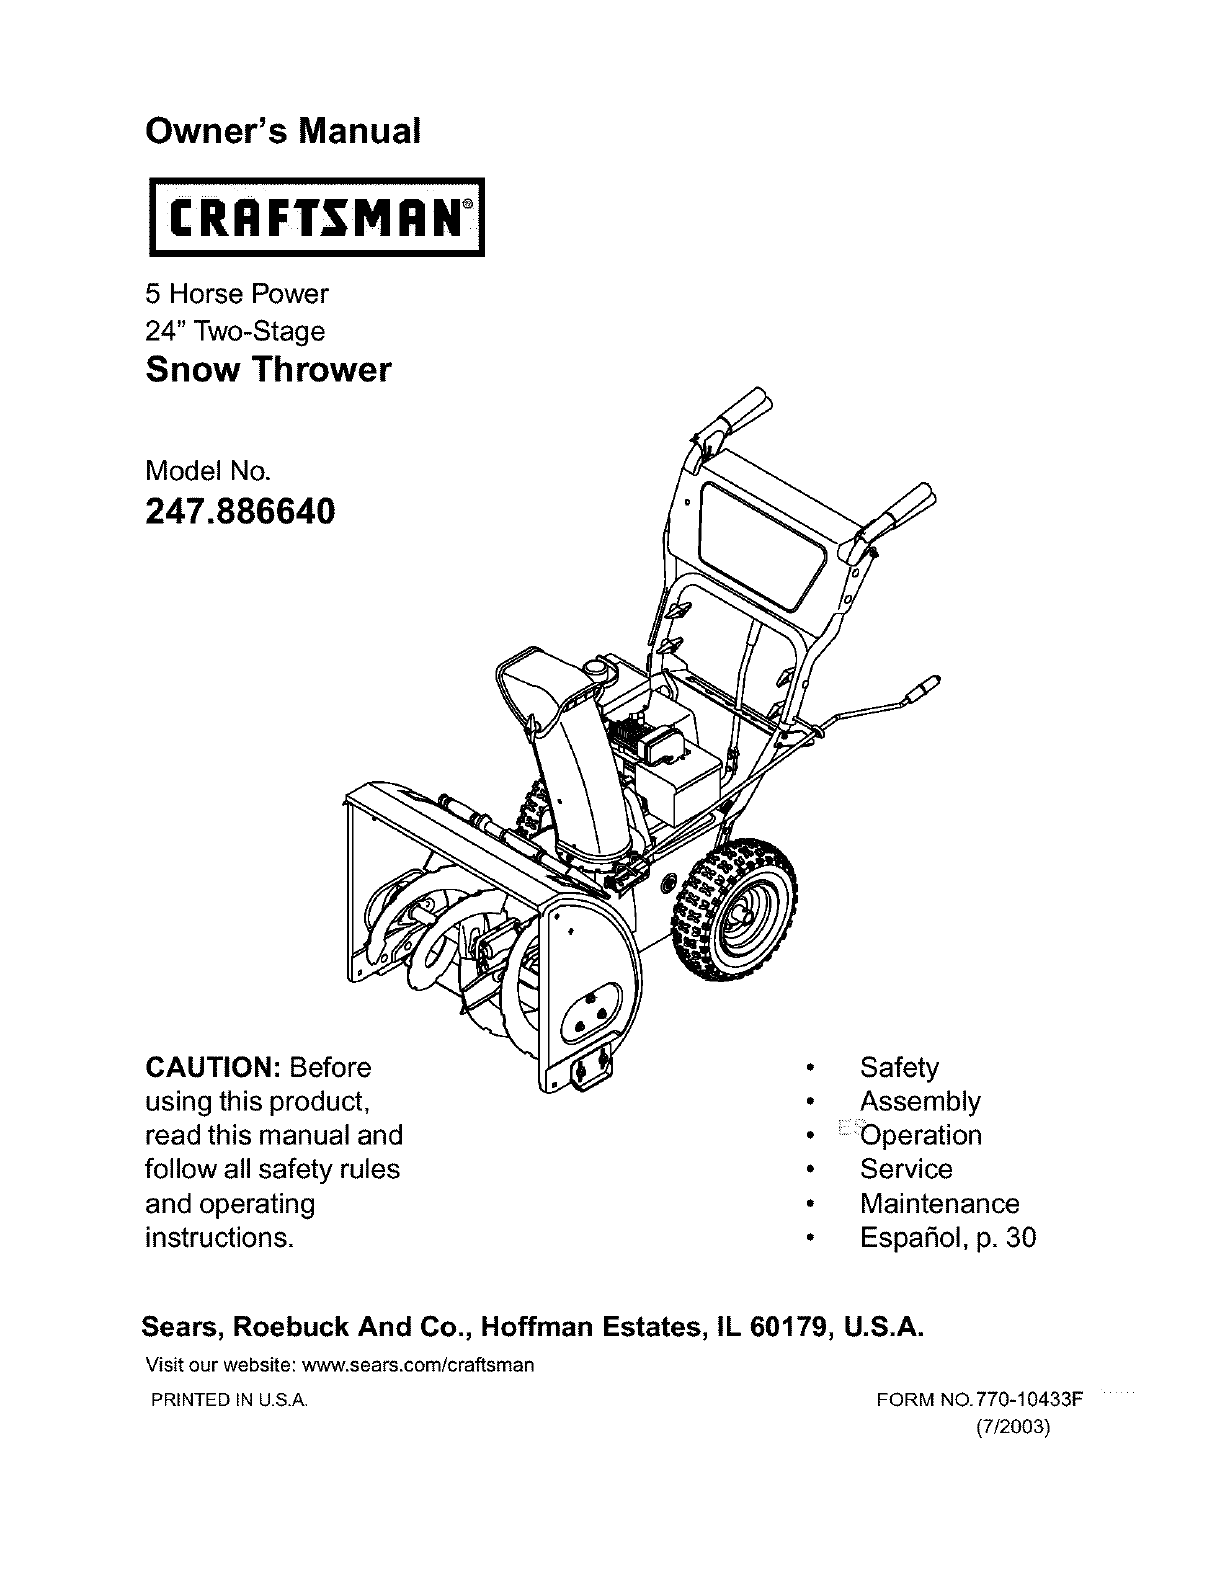 craftsman snow blower 247 88664 user guide manualsonline com rh lawnandgarden manualsonline com Sears Craftsman ManualsOnline Craftsman Instruction Manual